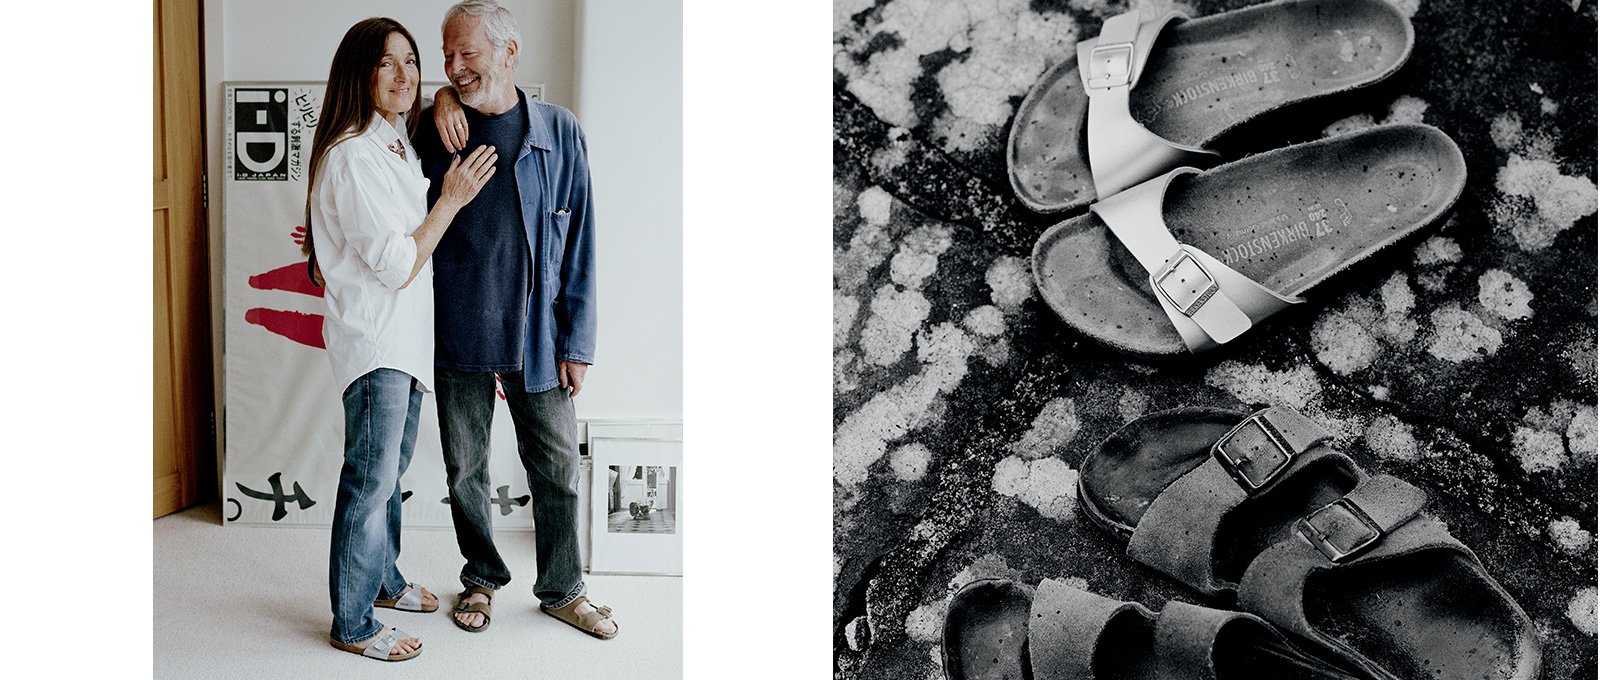 Tricia & Terry Jones in Birkenstocks